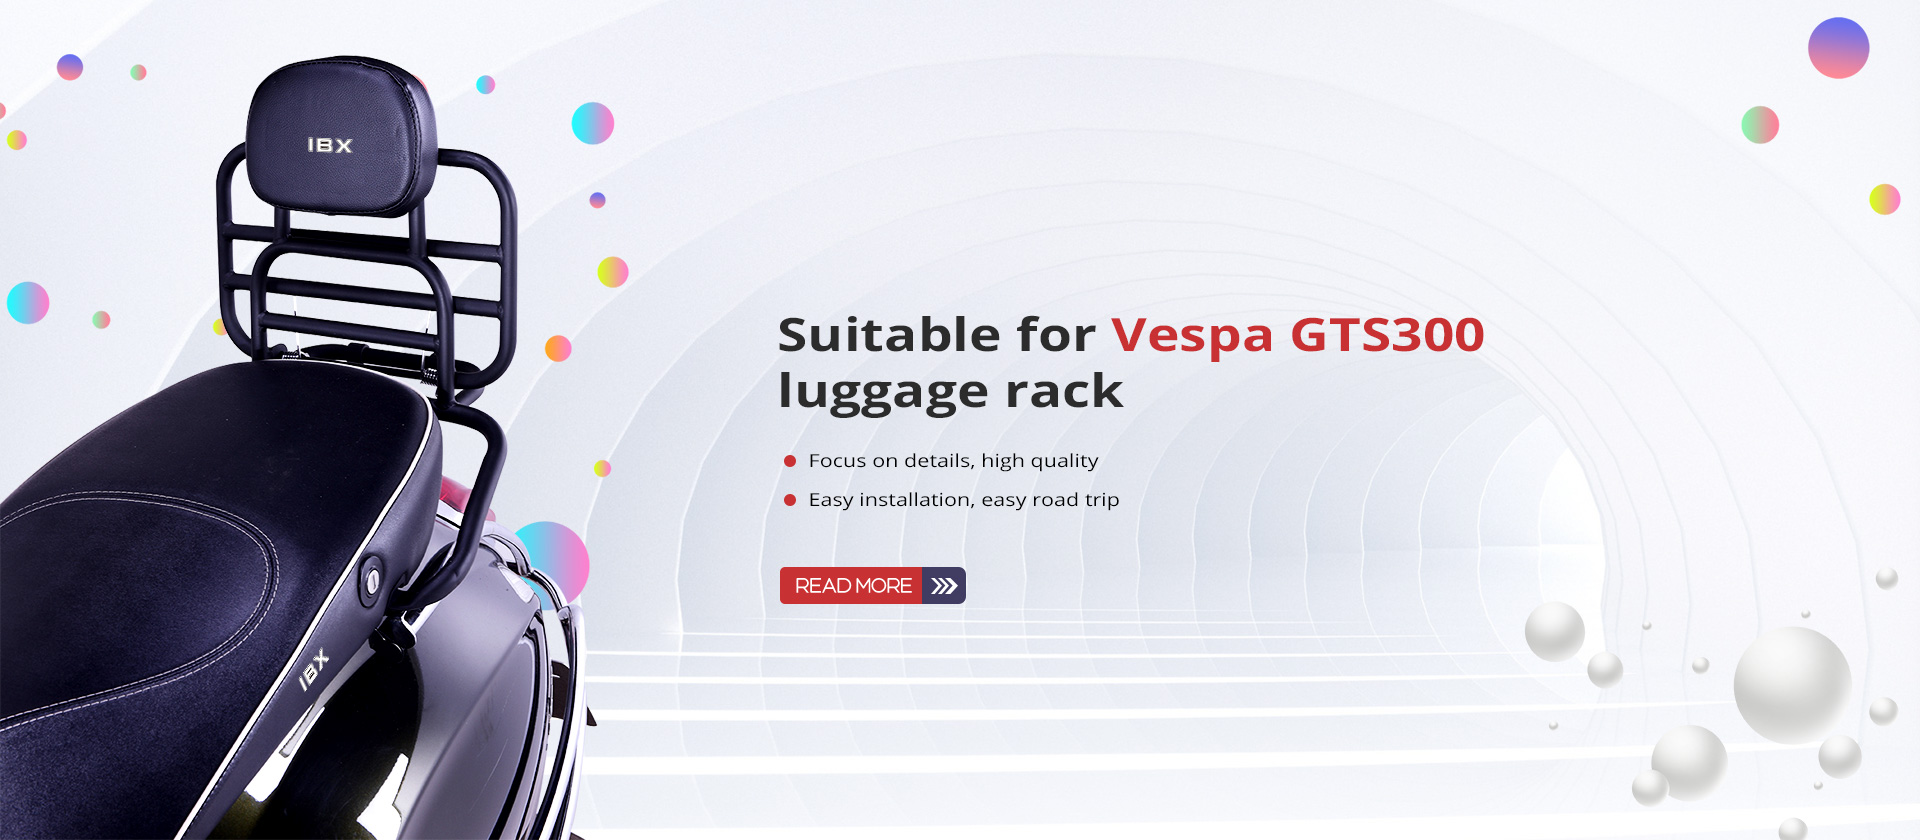 Suitable for Vespa GTS300 luggage rack